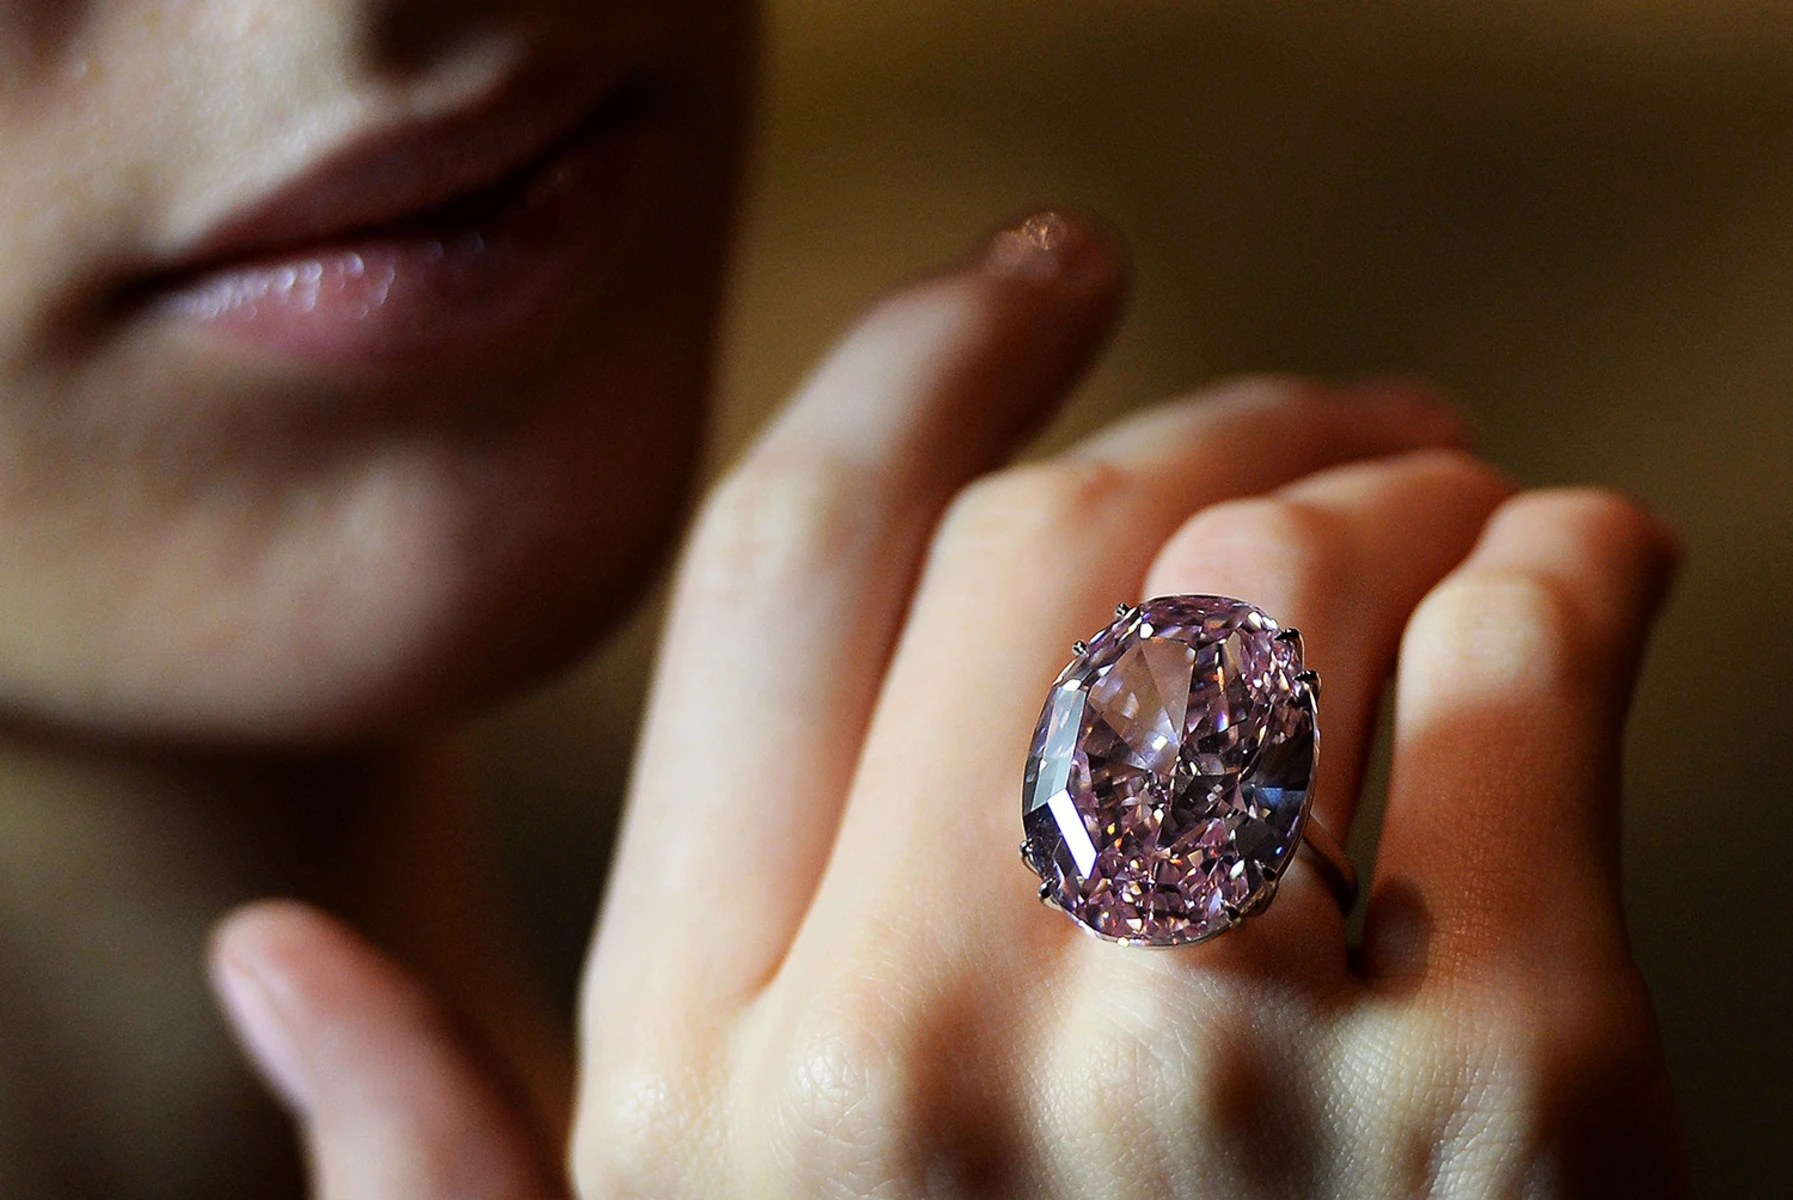 pink star diamond sells world record 83 million auction giant wedding ring Image Pink star diamond offered at auction